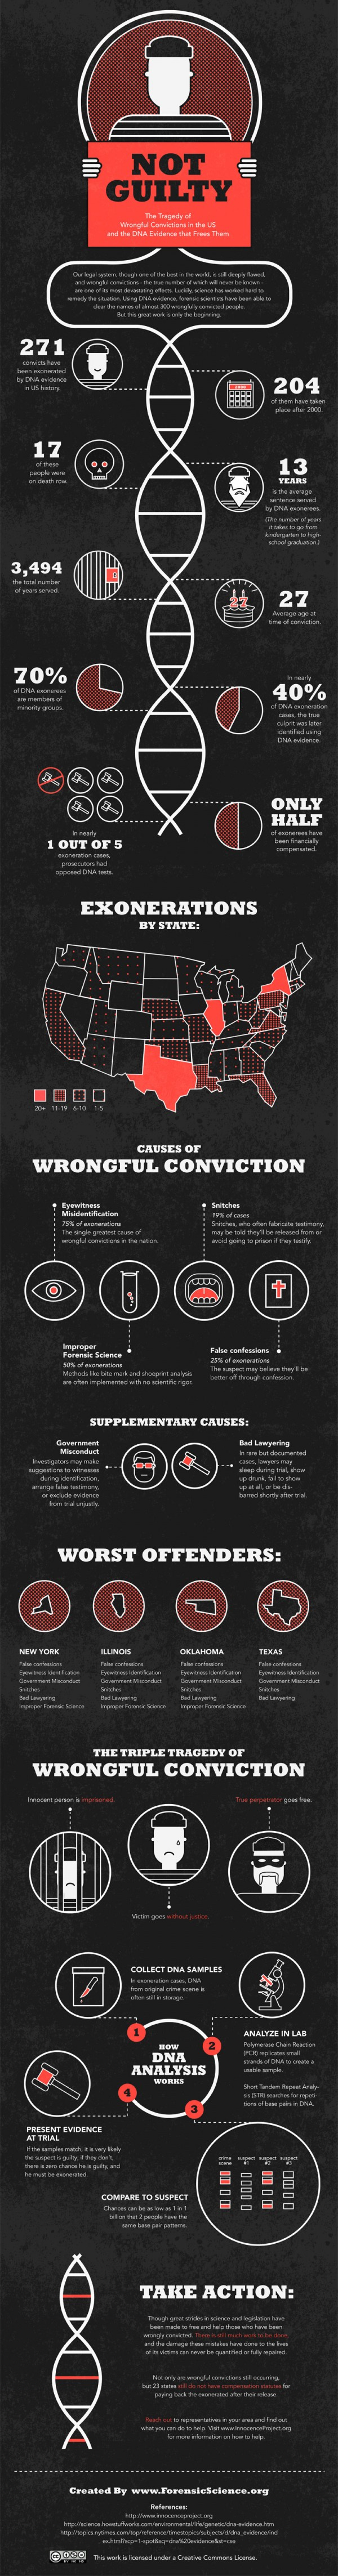 Wrongful-conviction-statistics